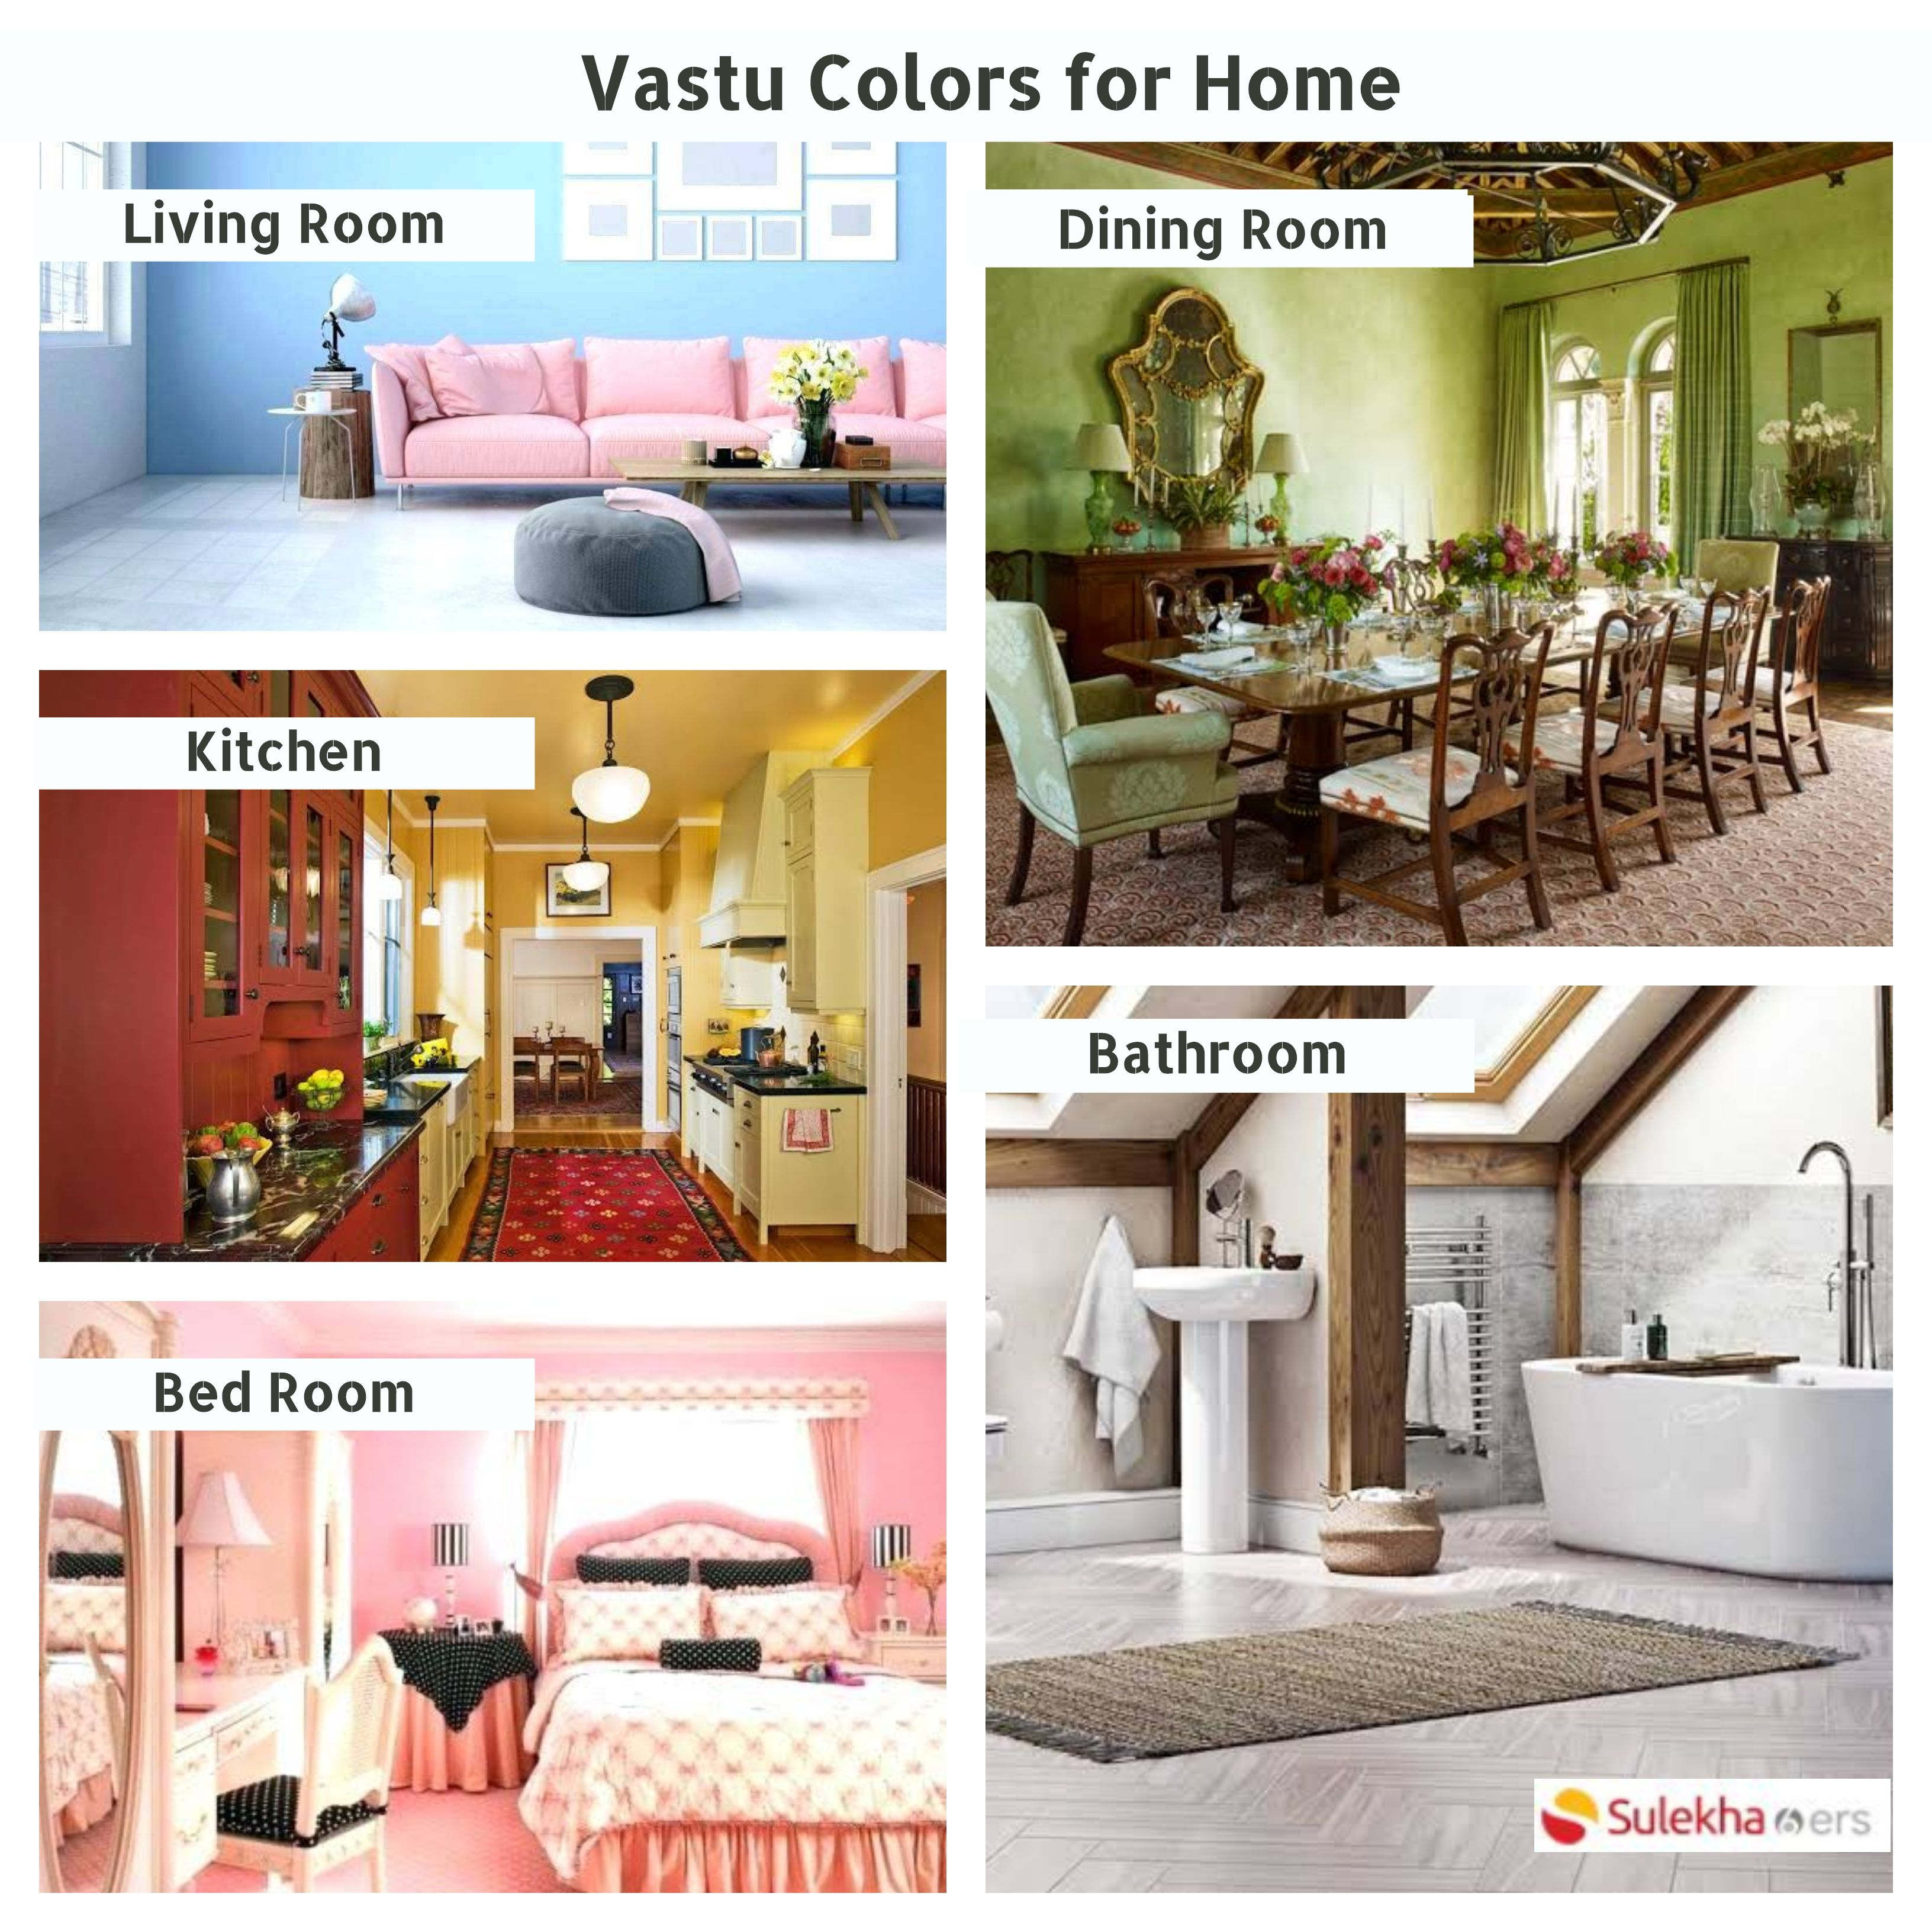 Choose The Right Wall Colors According To Vastu In 2020 Light Blue Living Room Green Dining Room Dining Room Colors